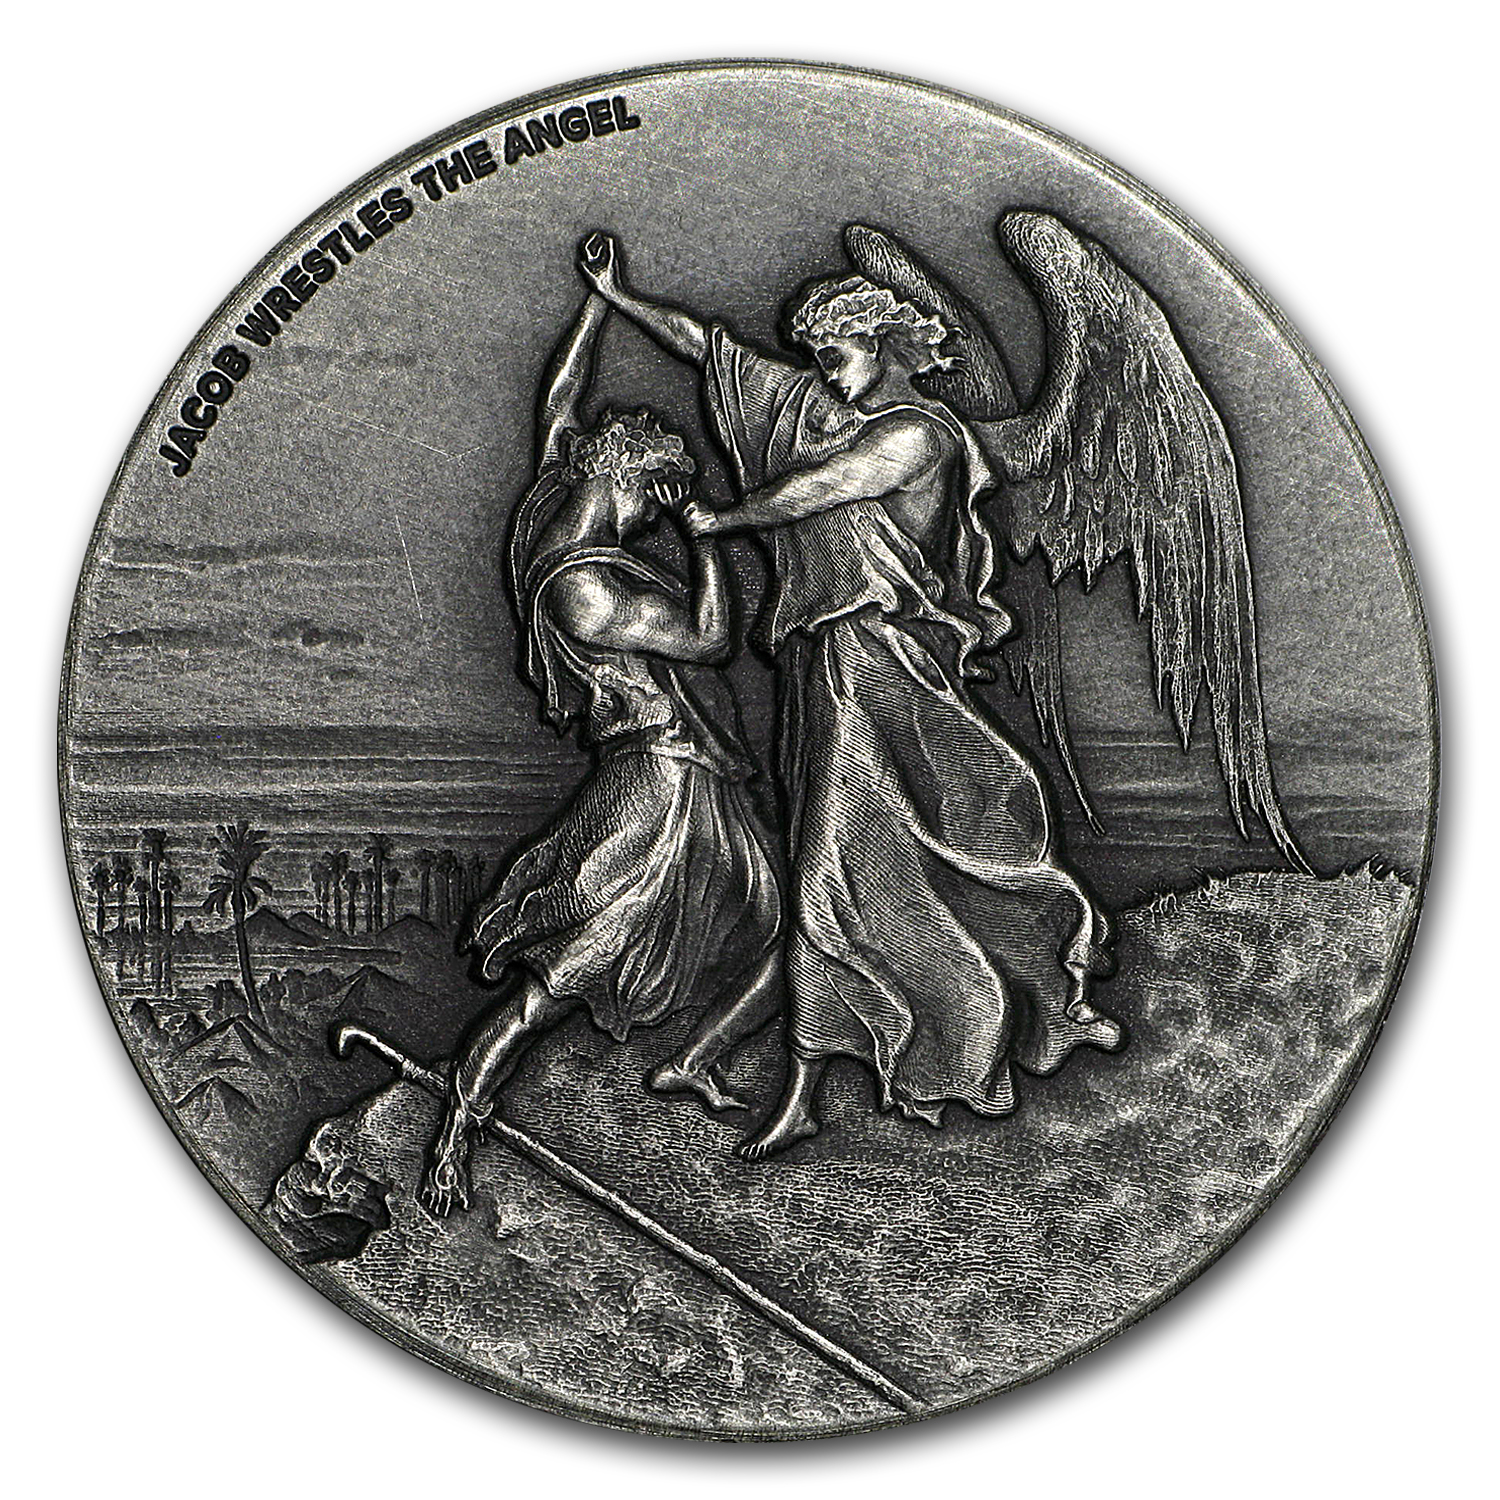 2017 2 oz Silver Coin - Biblical Series (Jacob Wrestles Angel)